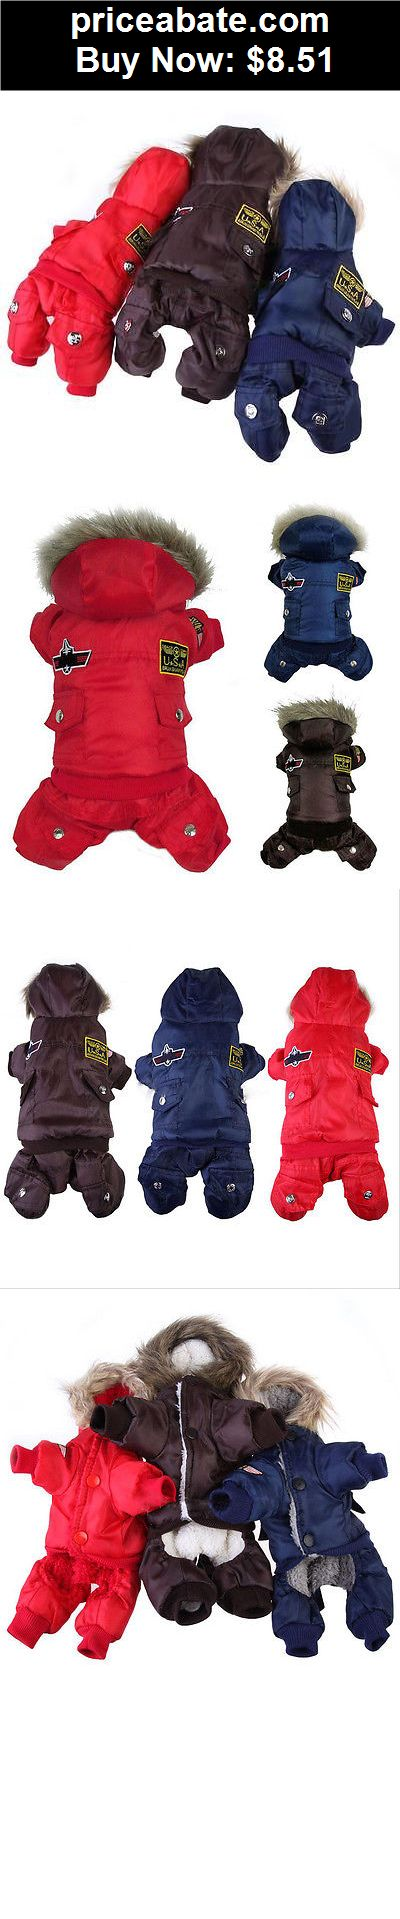 Animals-Dog: Winter Dog Pet Warm Coat Puppy Jumpsuit Pants Hoodie Down Jacket Cat Clothes U78 - BUY IT NOW ONLY $8.51